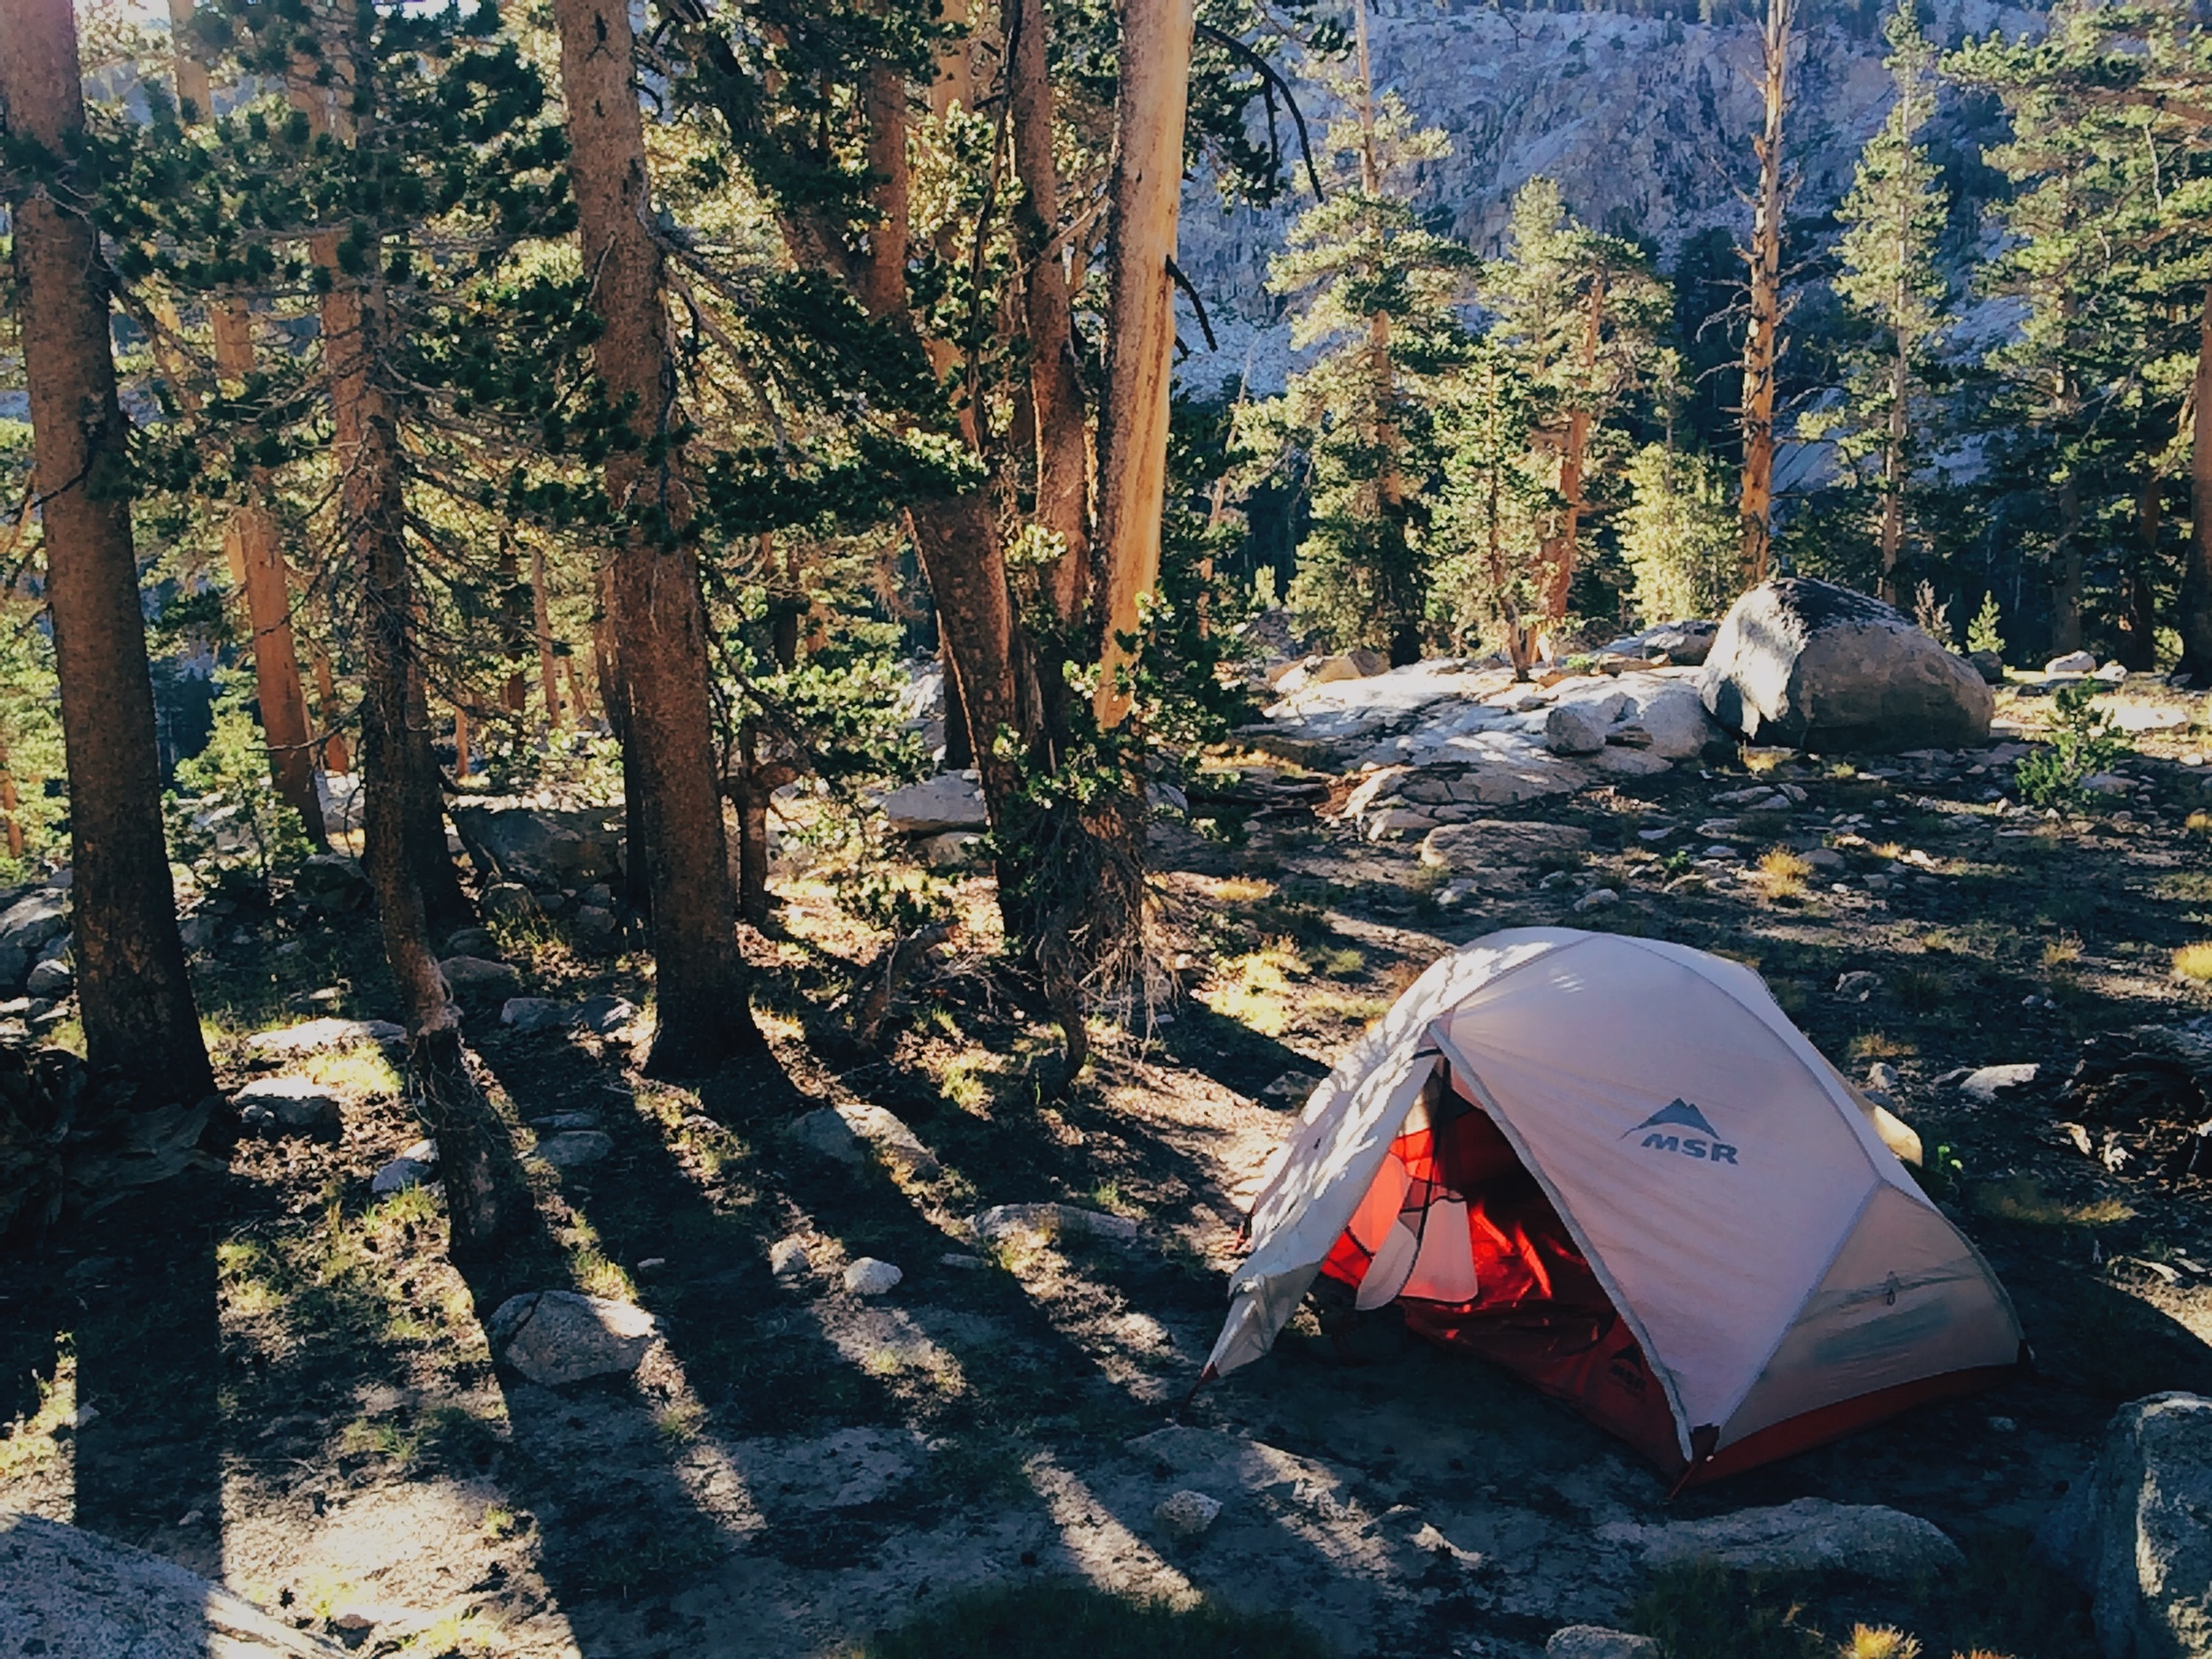 Day 1: Camping ½ mile north of Lyell Fork bridge.